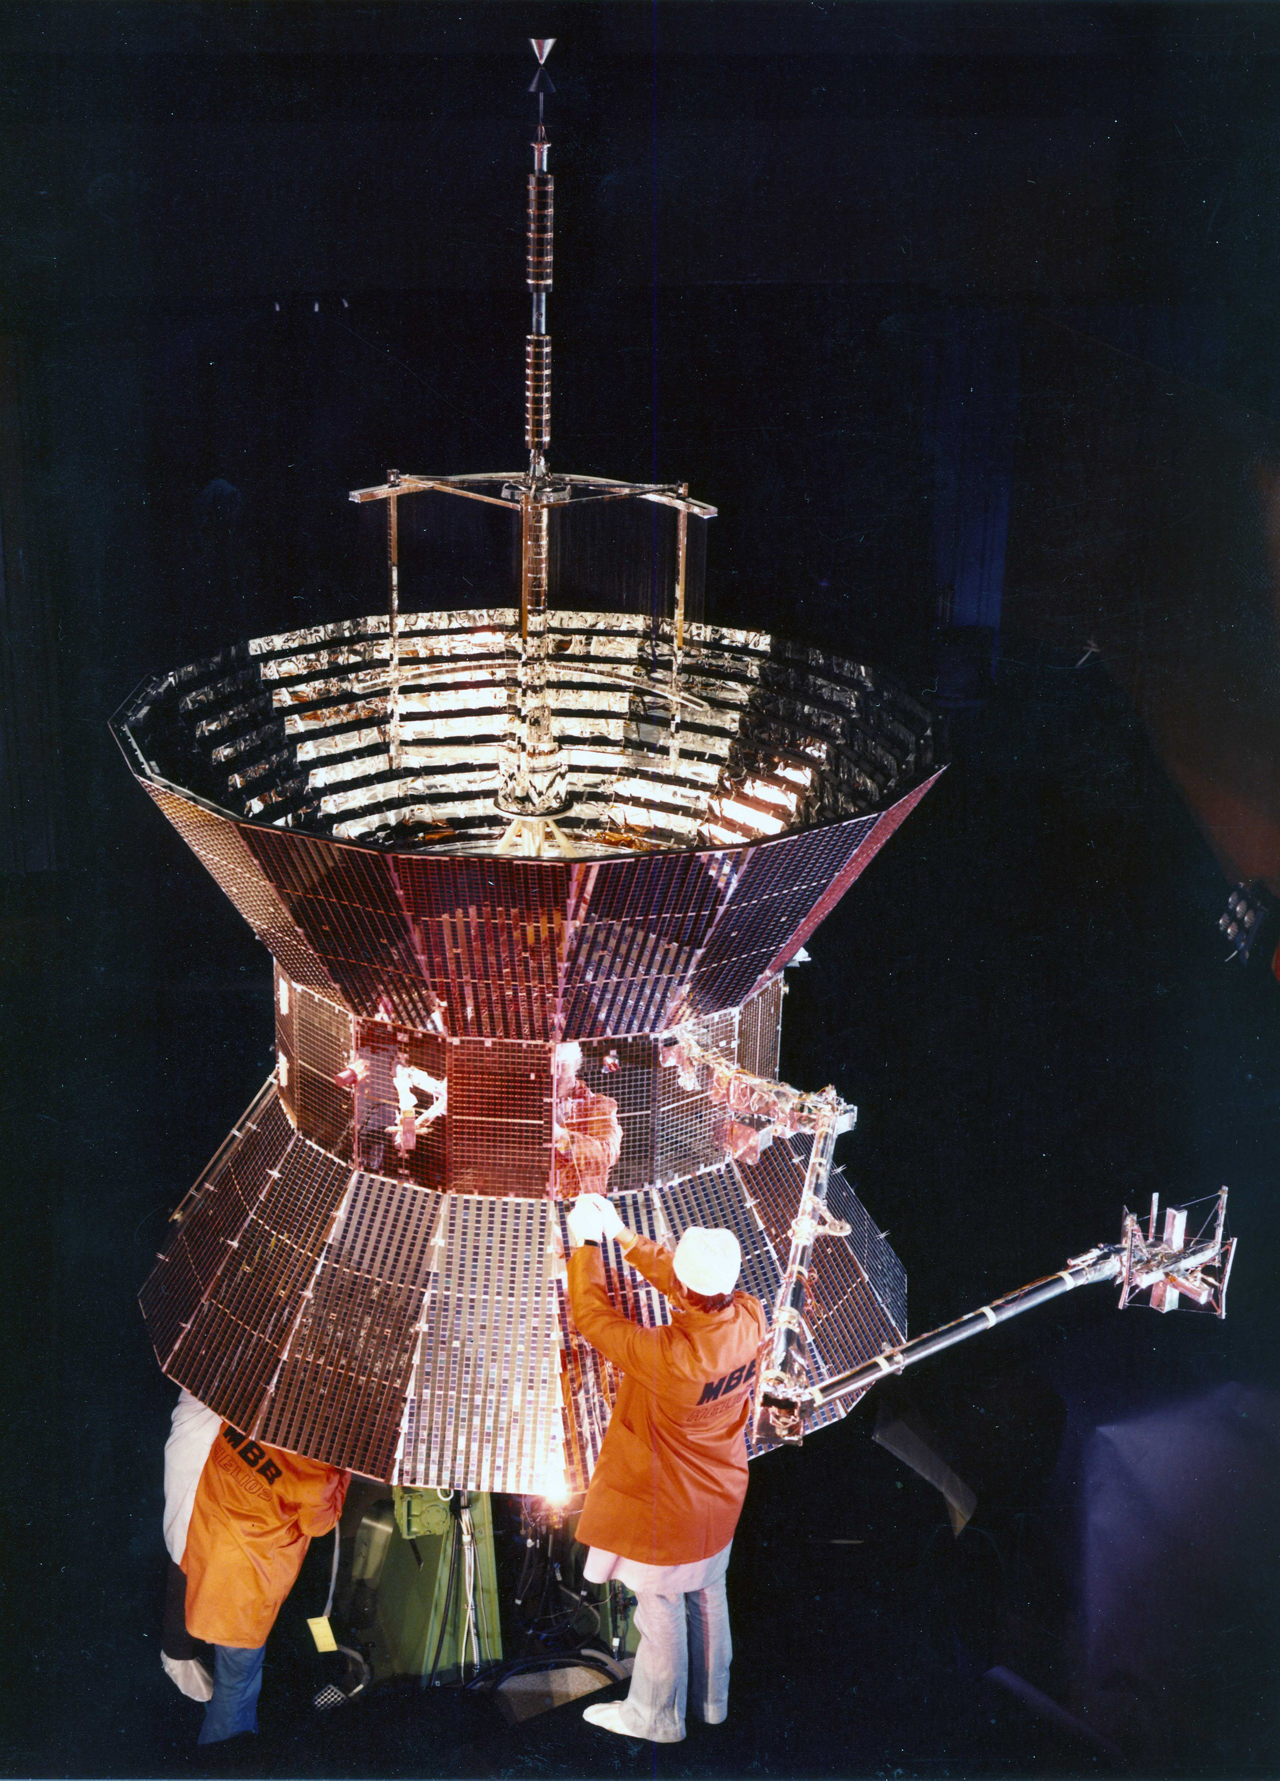 Helios A and B - German-American solar probes to measure energy and radiance, cosmic dust and interplanetary stray light in an orbit round the sun.